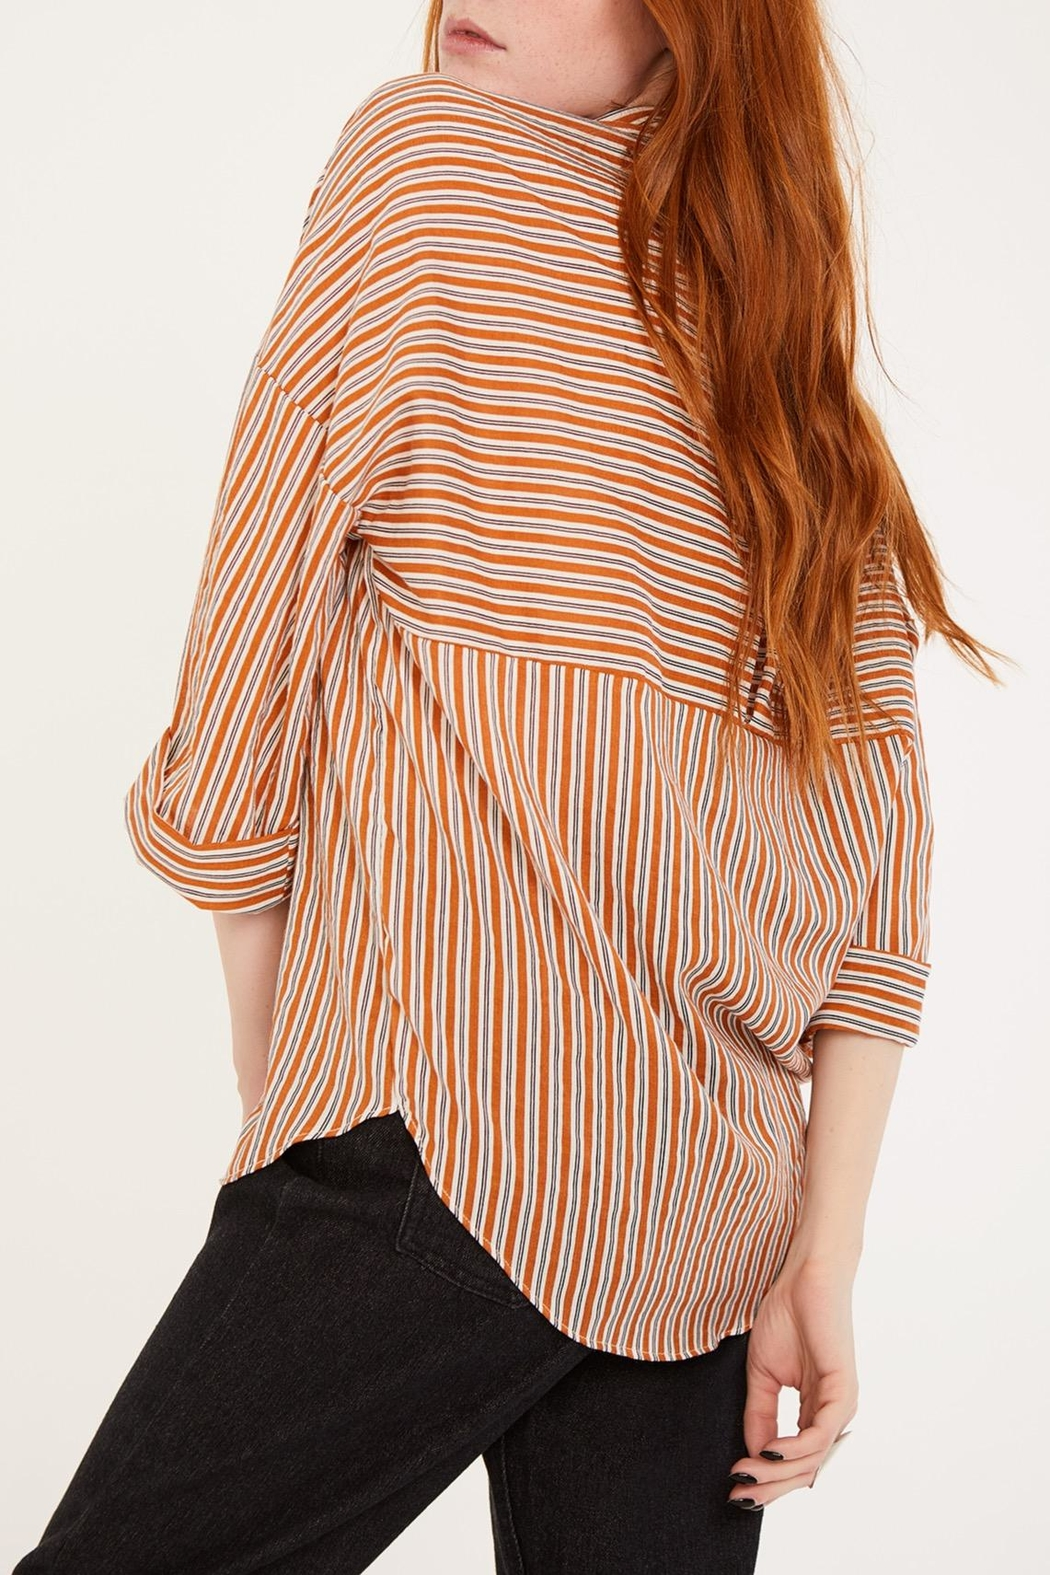 Lovan M Bari Orange Shirt - Back Cropped Image